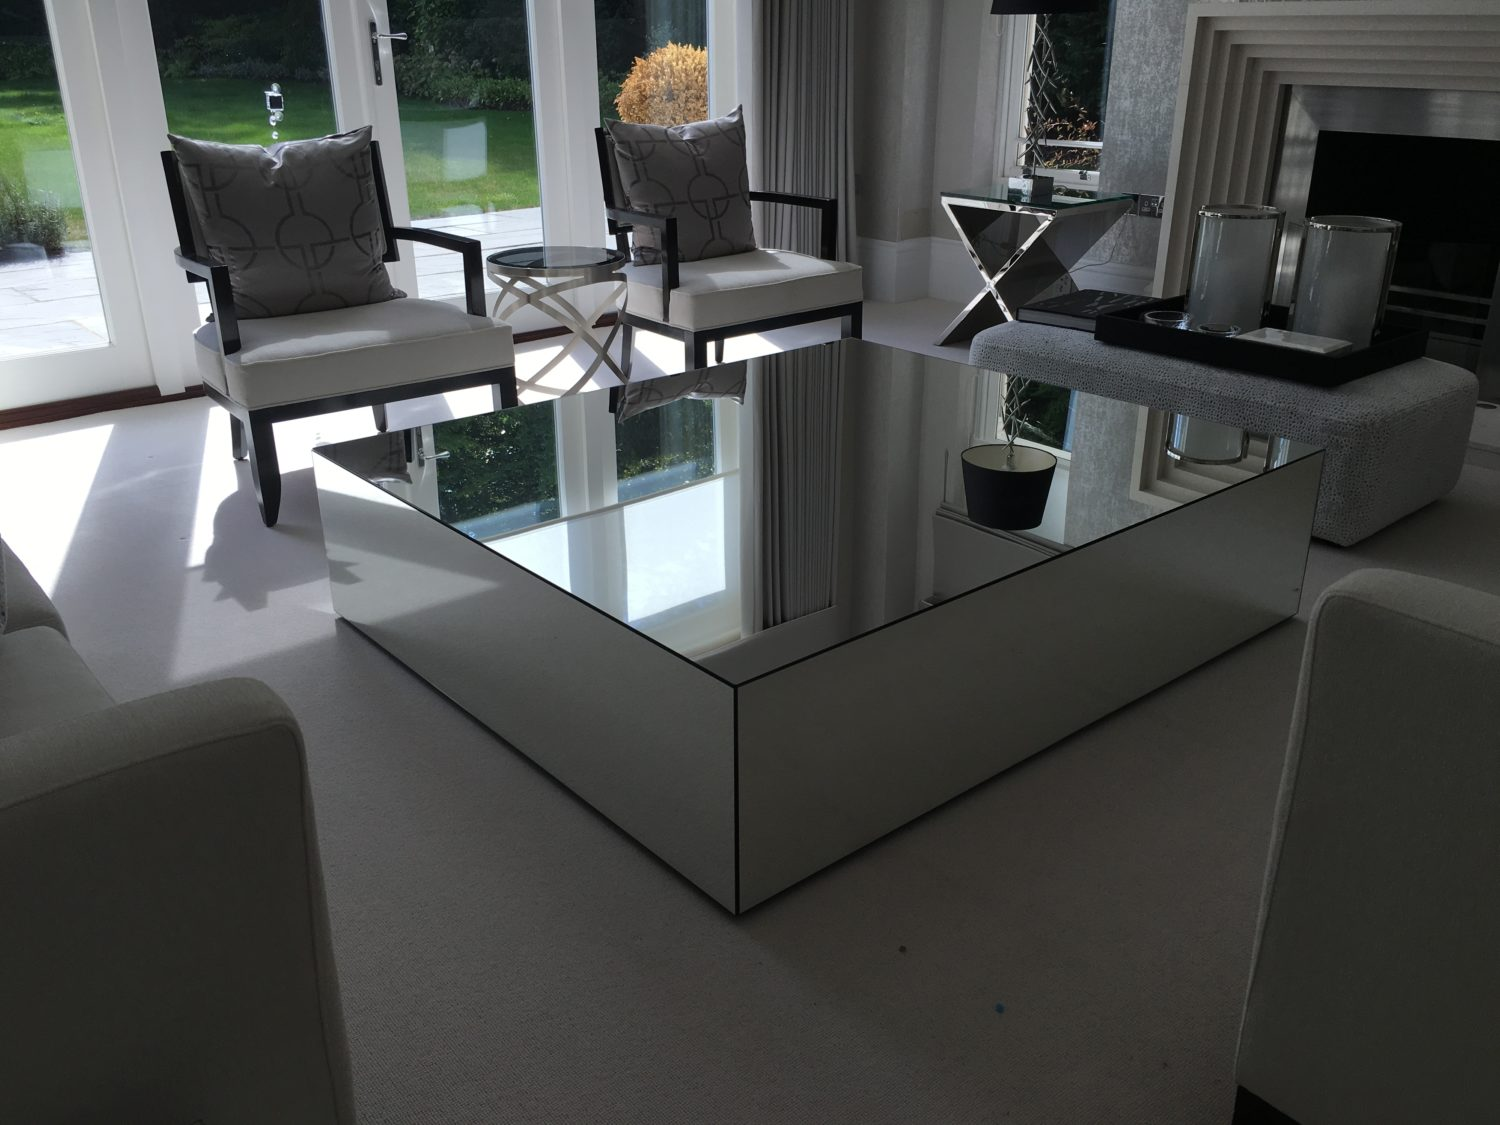 Mirrored Coffee Tables Klarity Glass Furniture